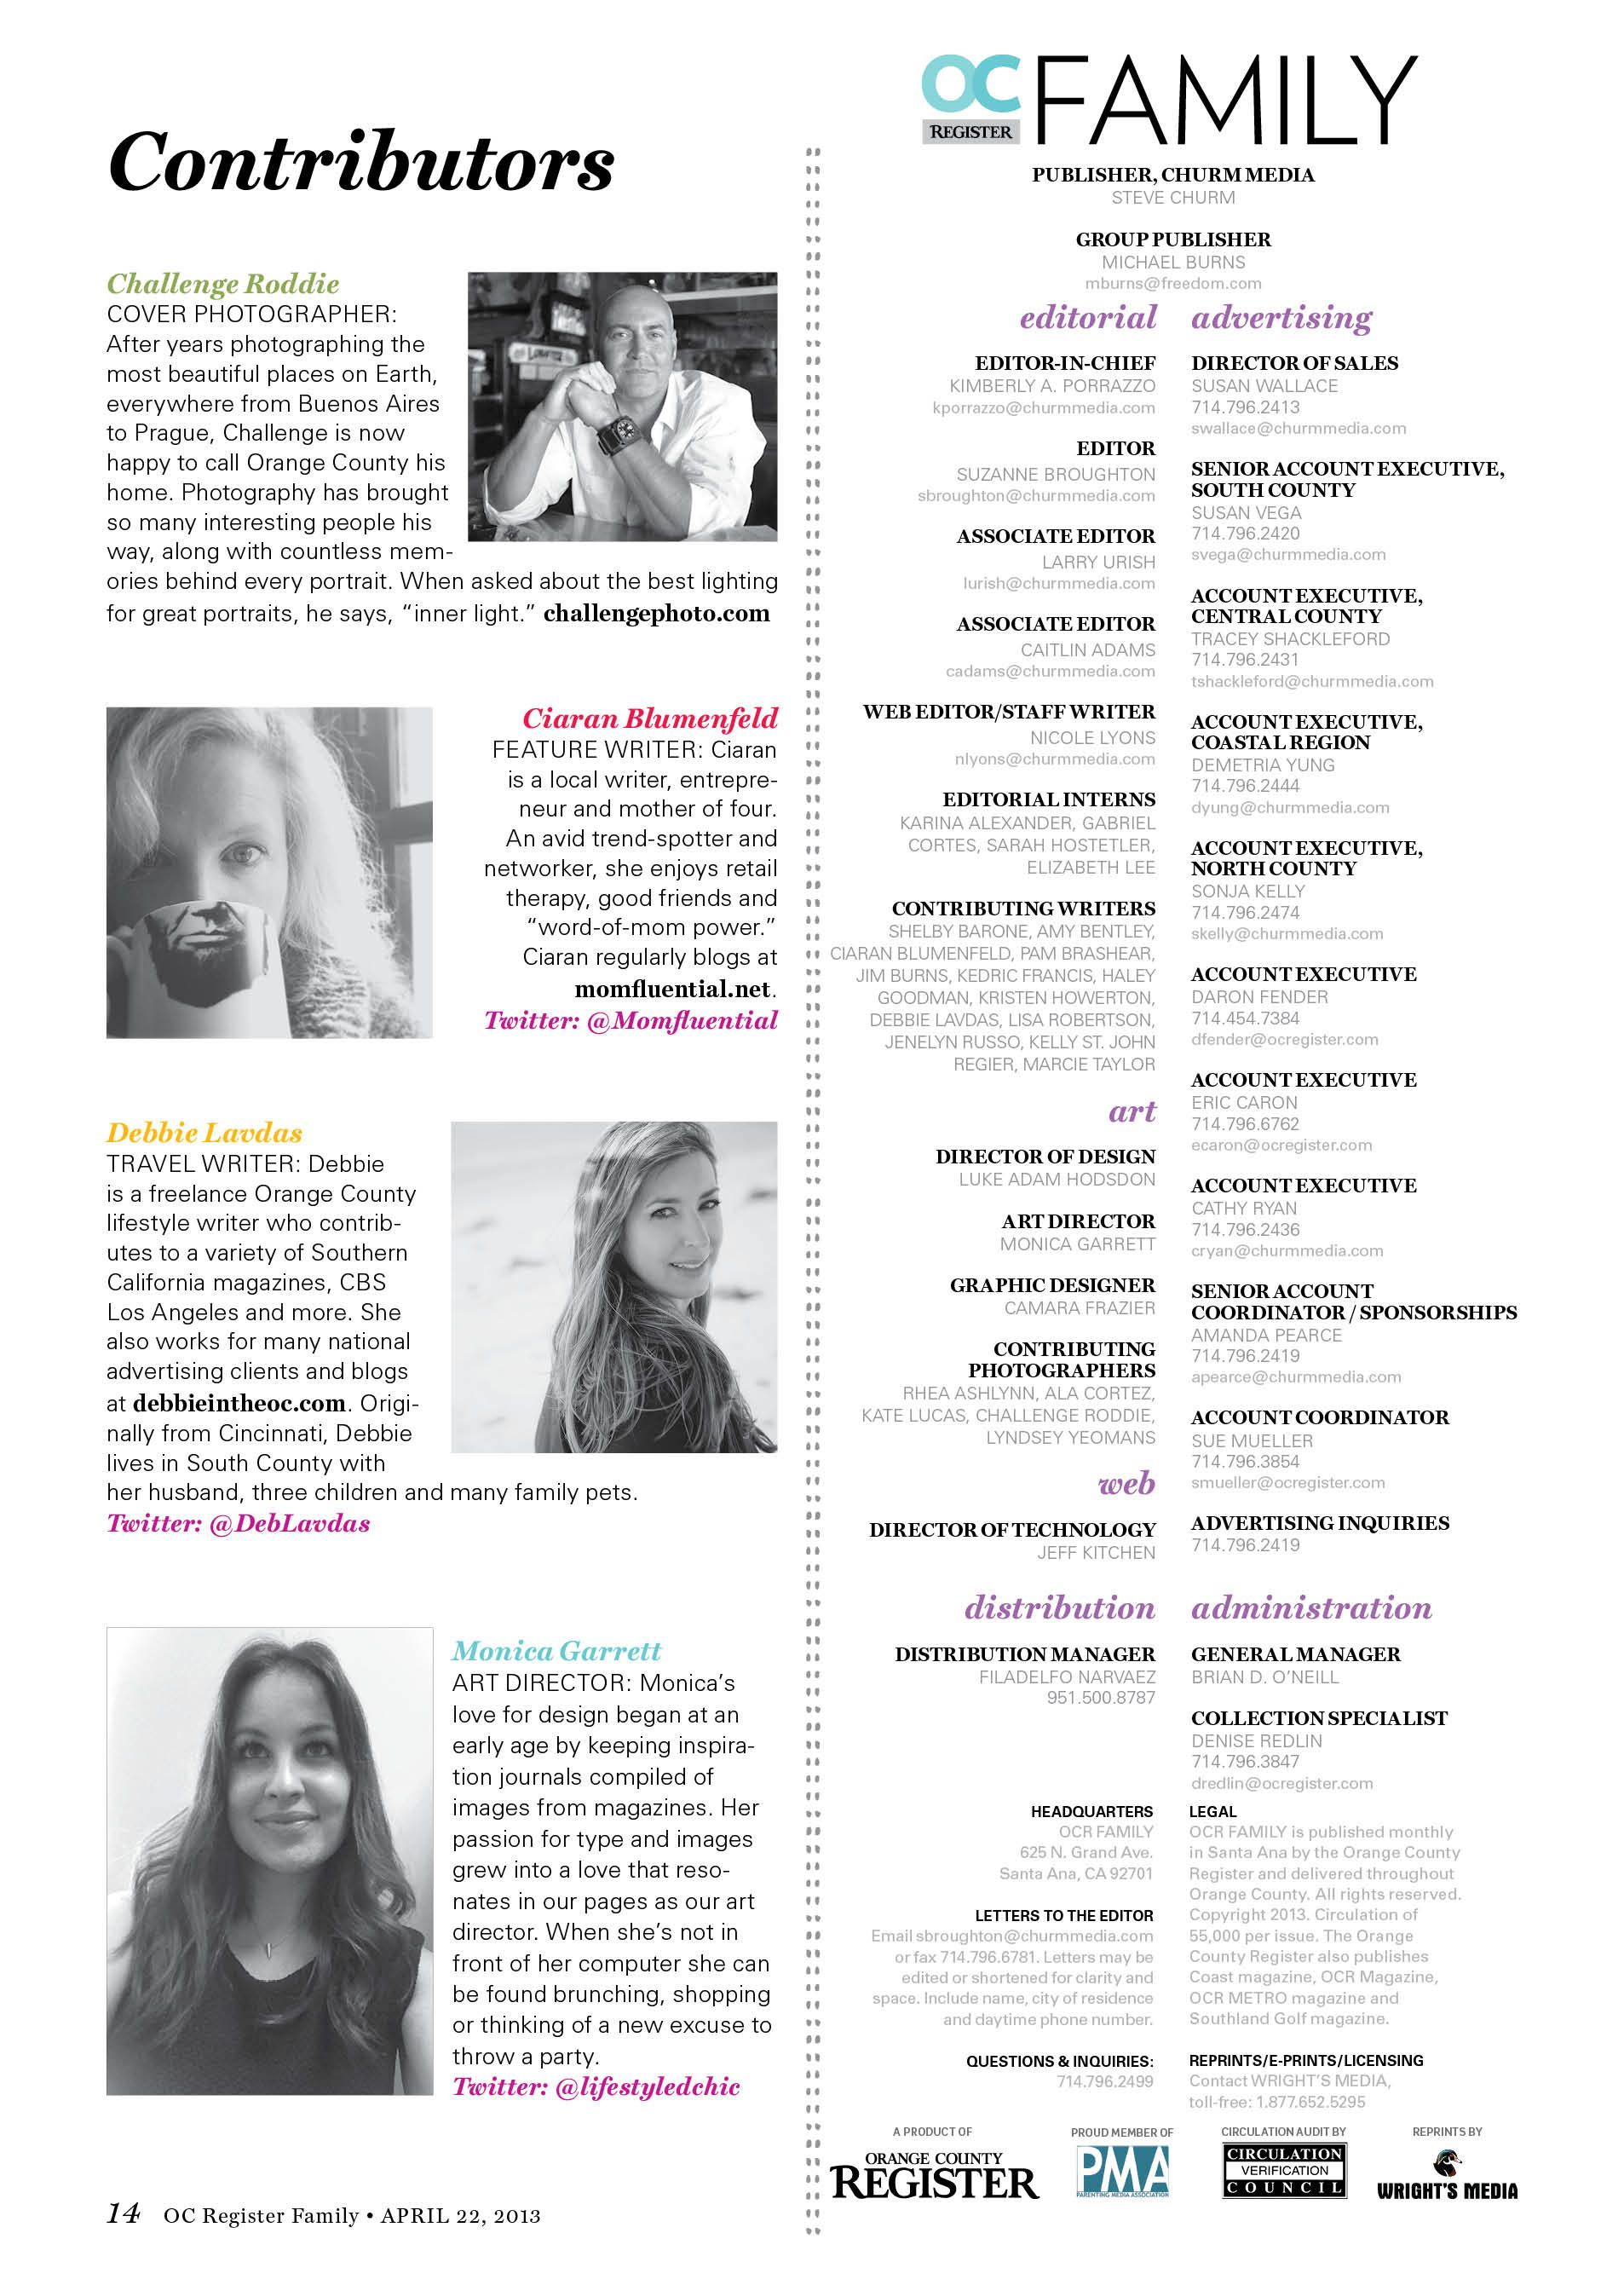 Contributor's page for OC Family magazine #